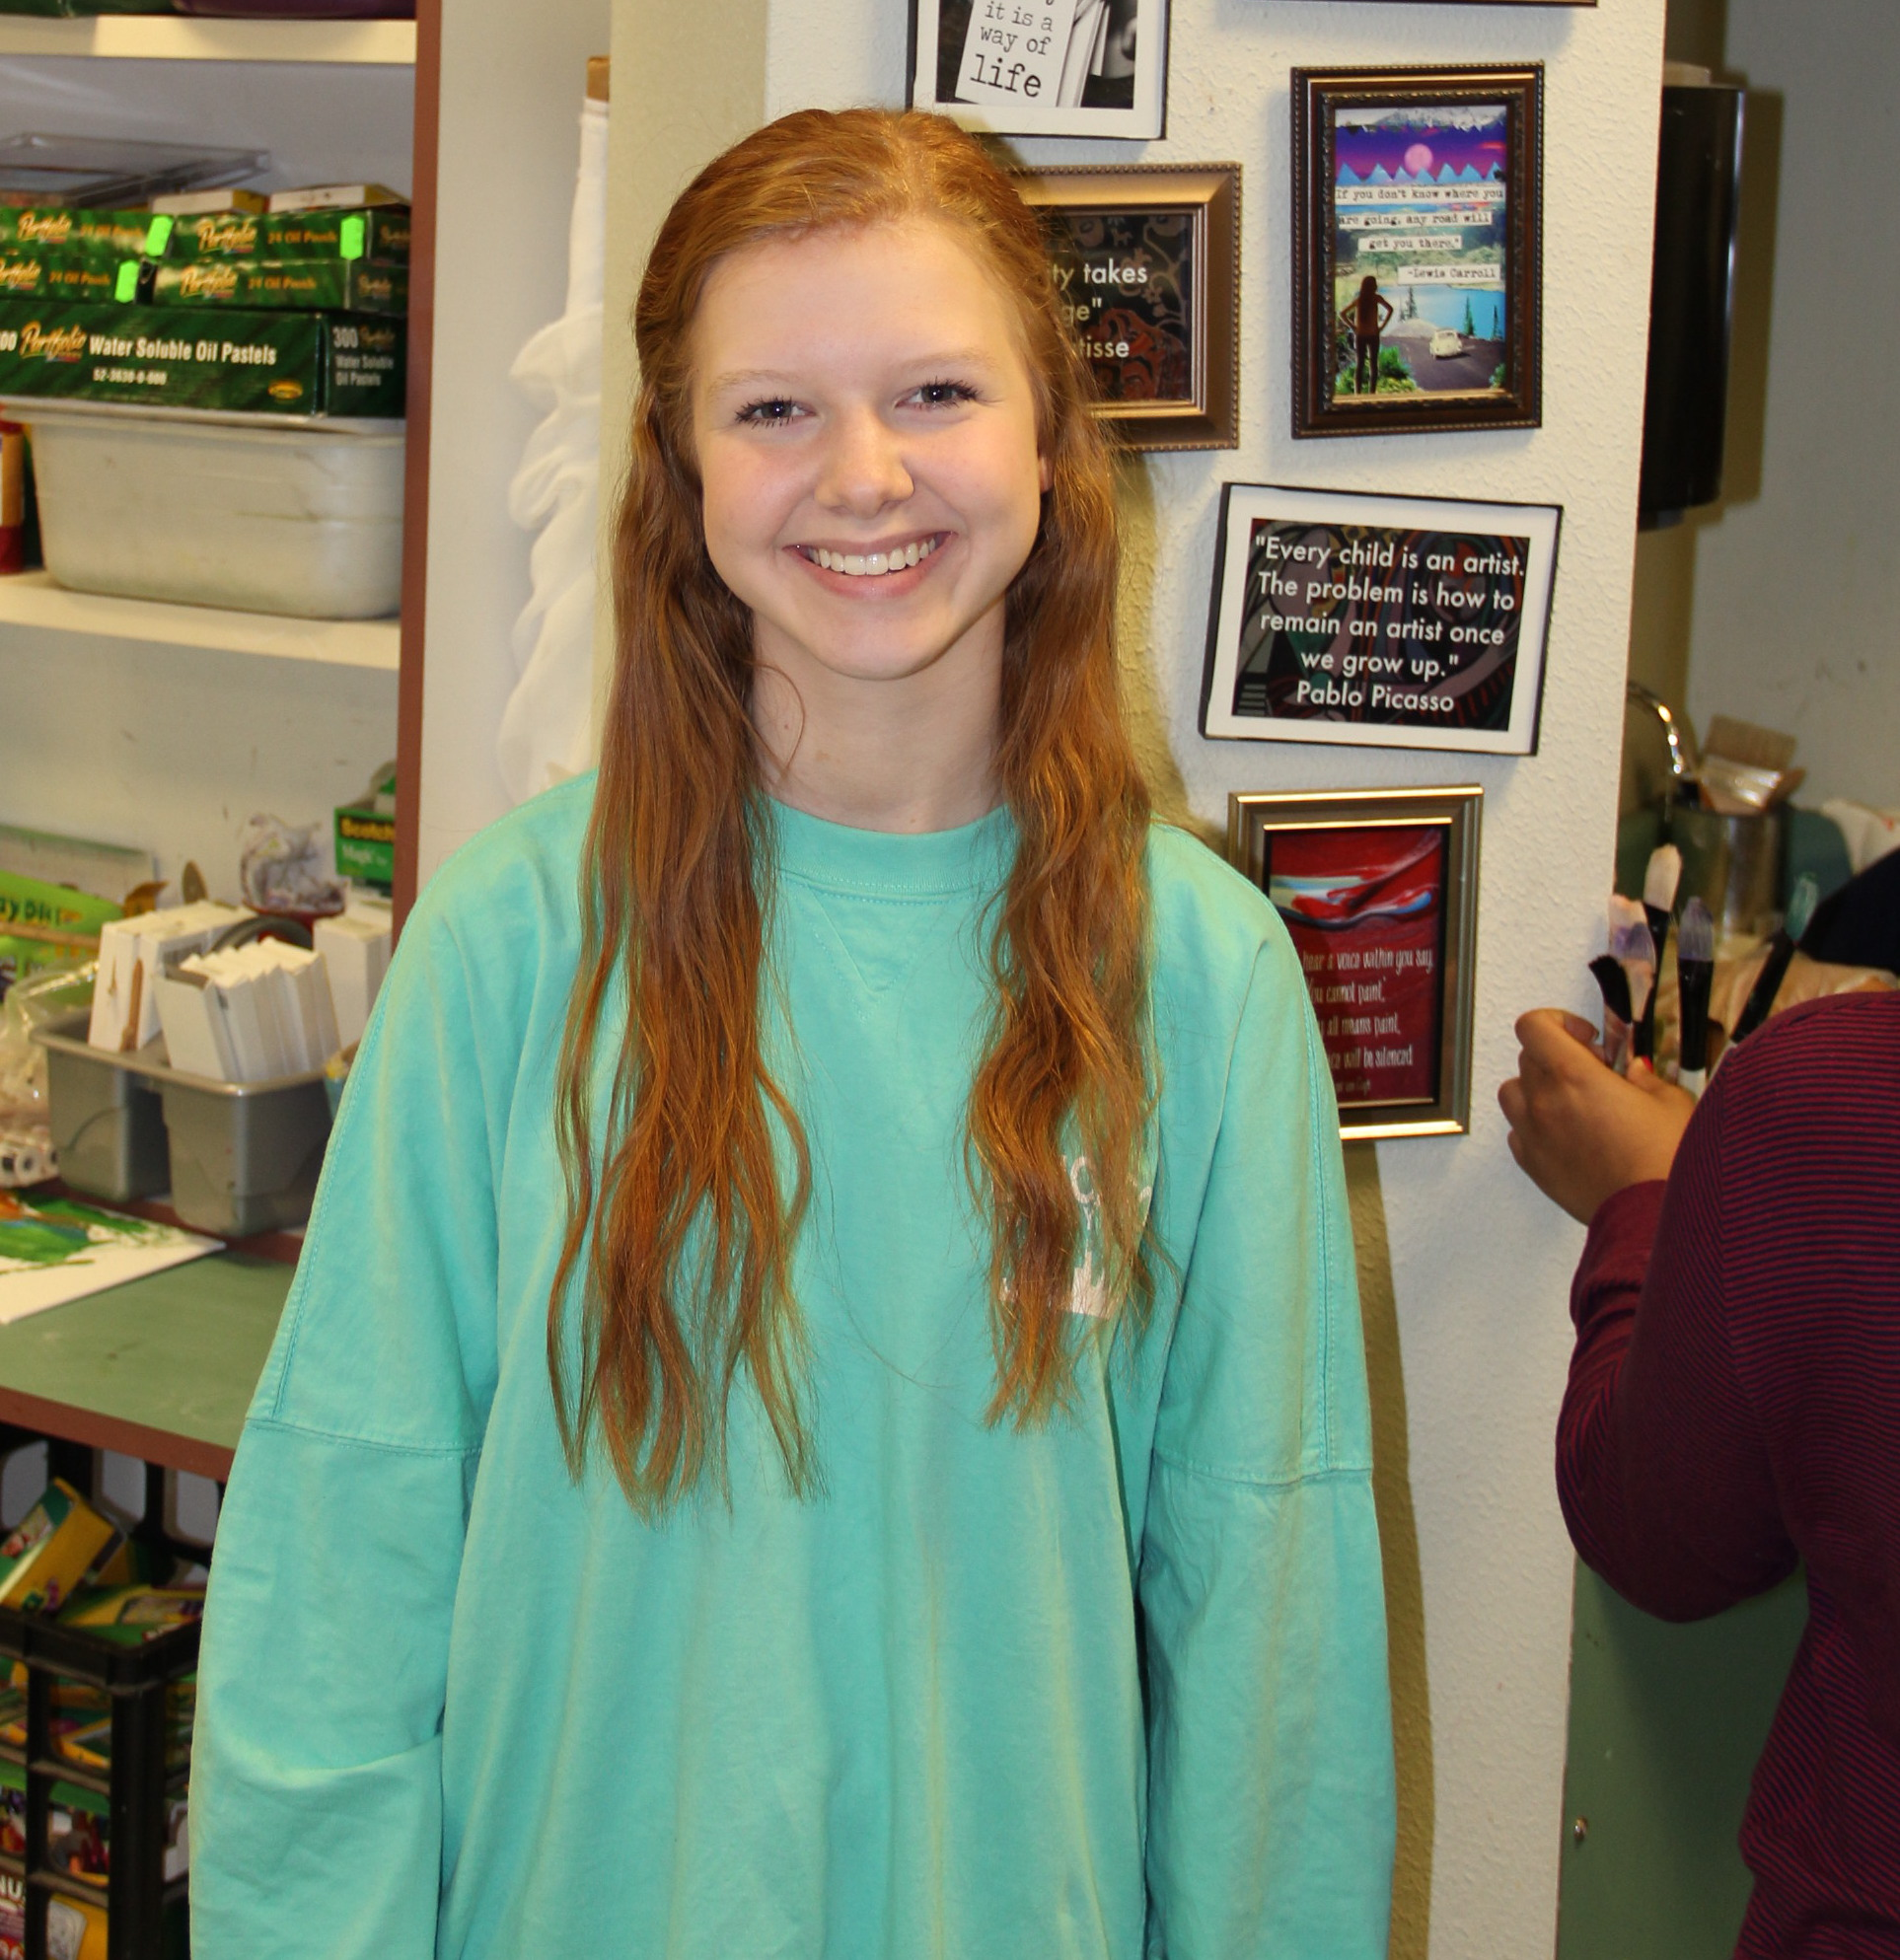 CCHS student earns spot in prestigious art competition